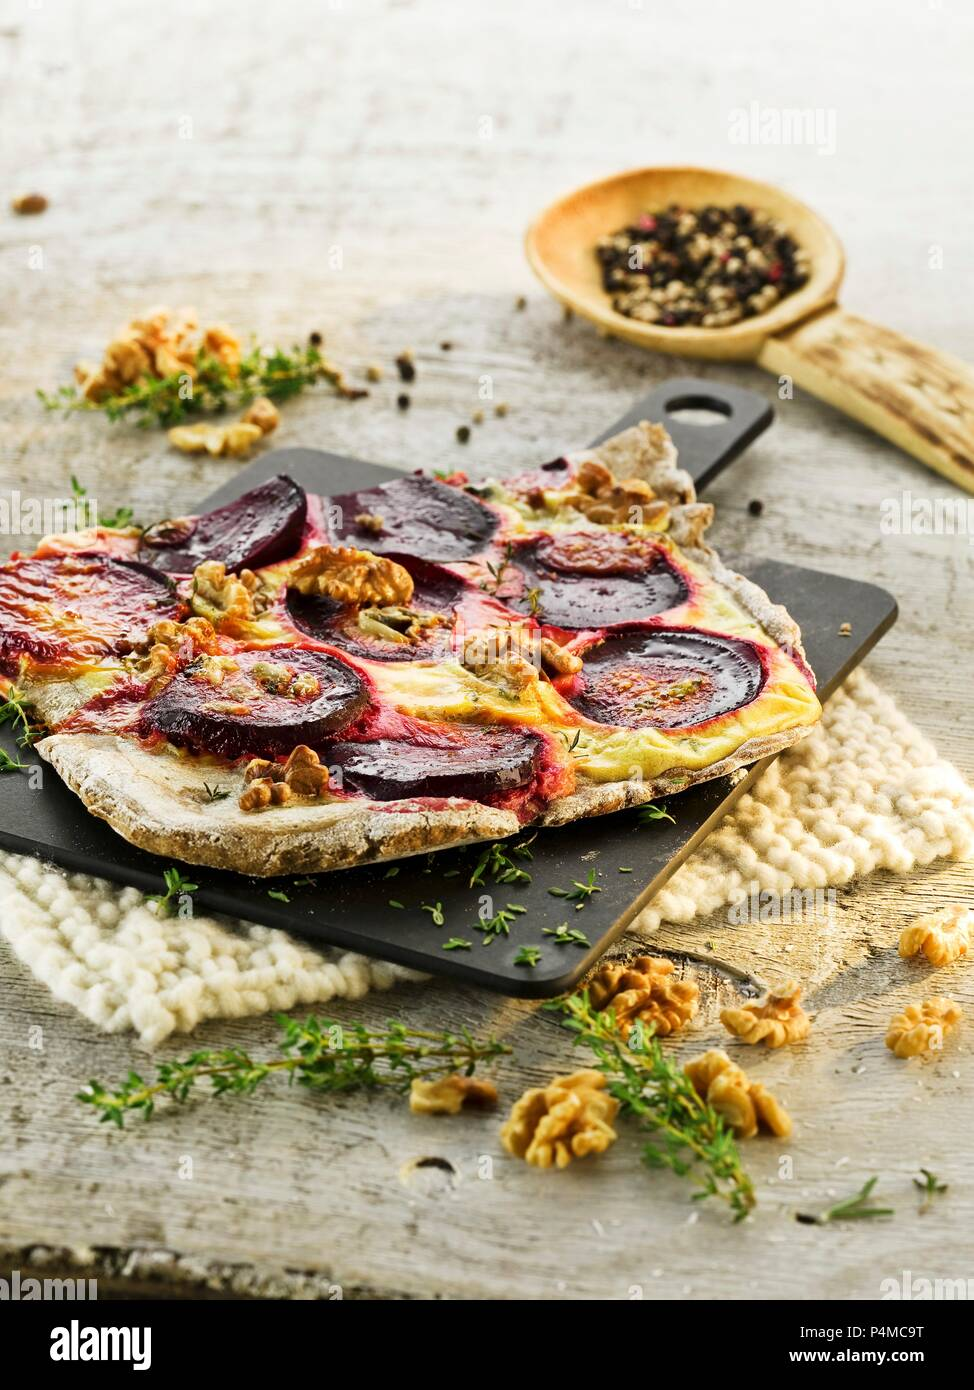 Tarte flambée with beetroot and walnuts - Stock Image